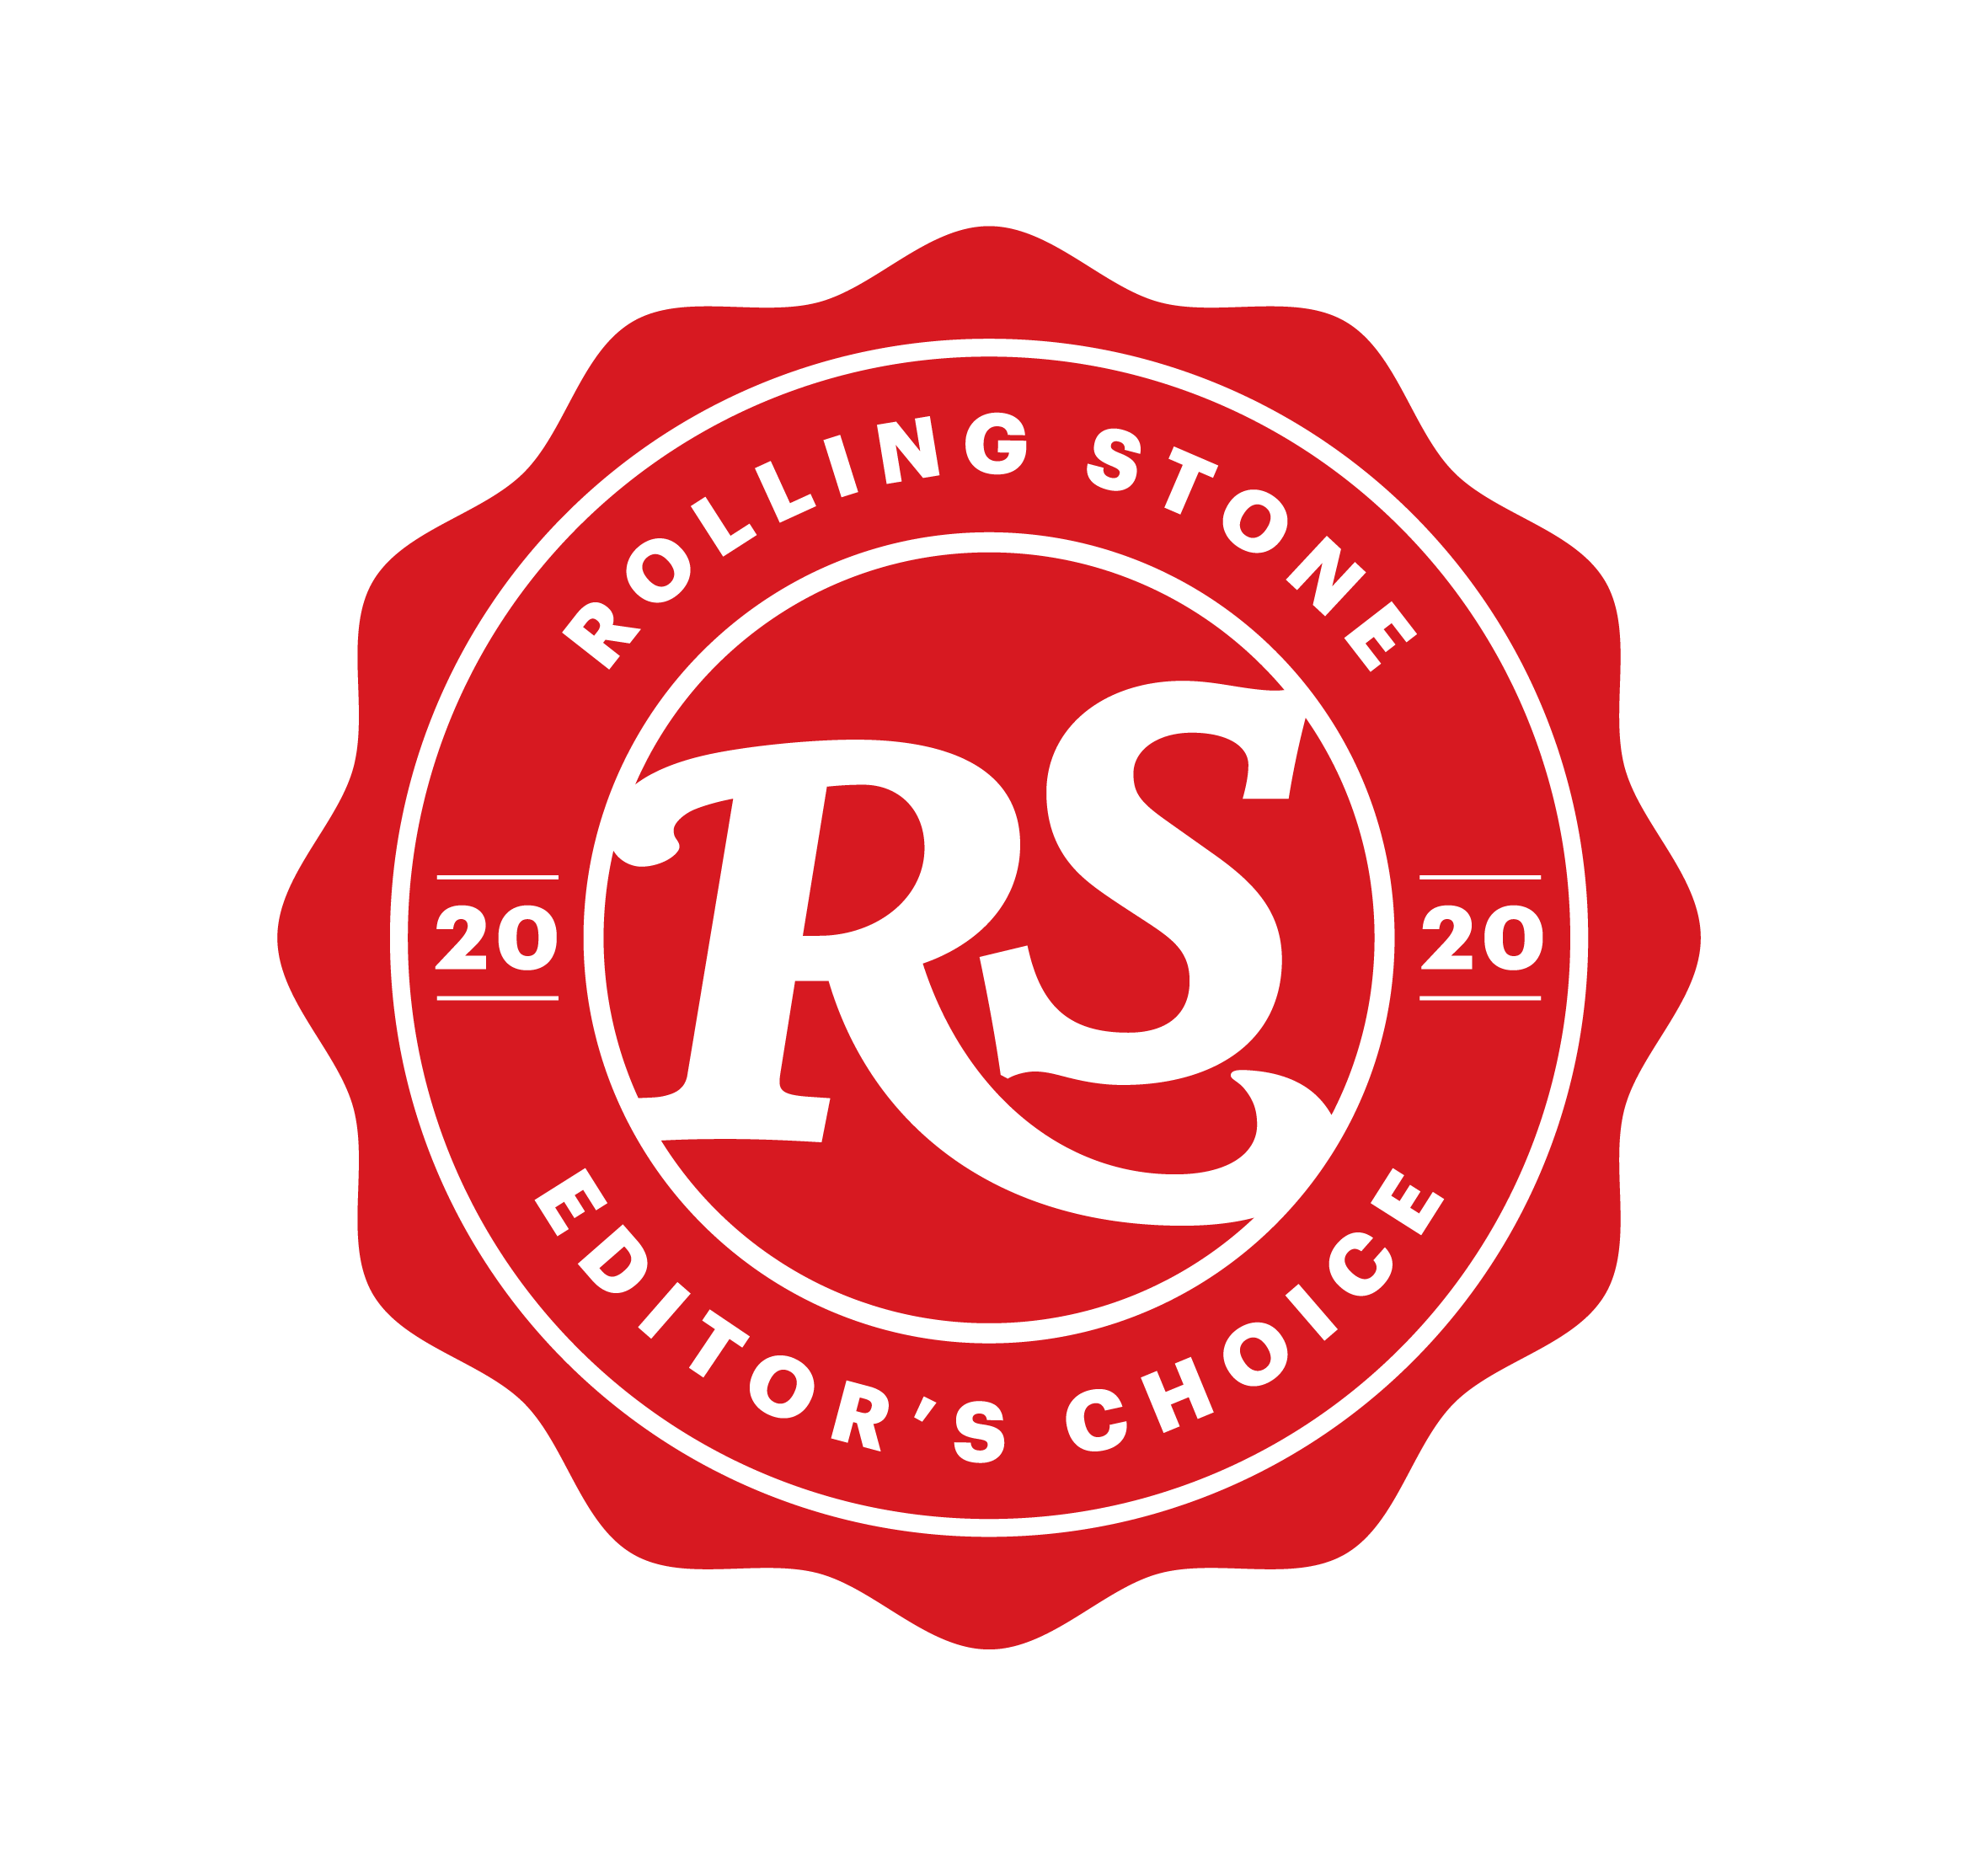 """Rolling Stone """"Editor's Choice 2020"""""""